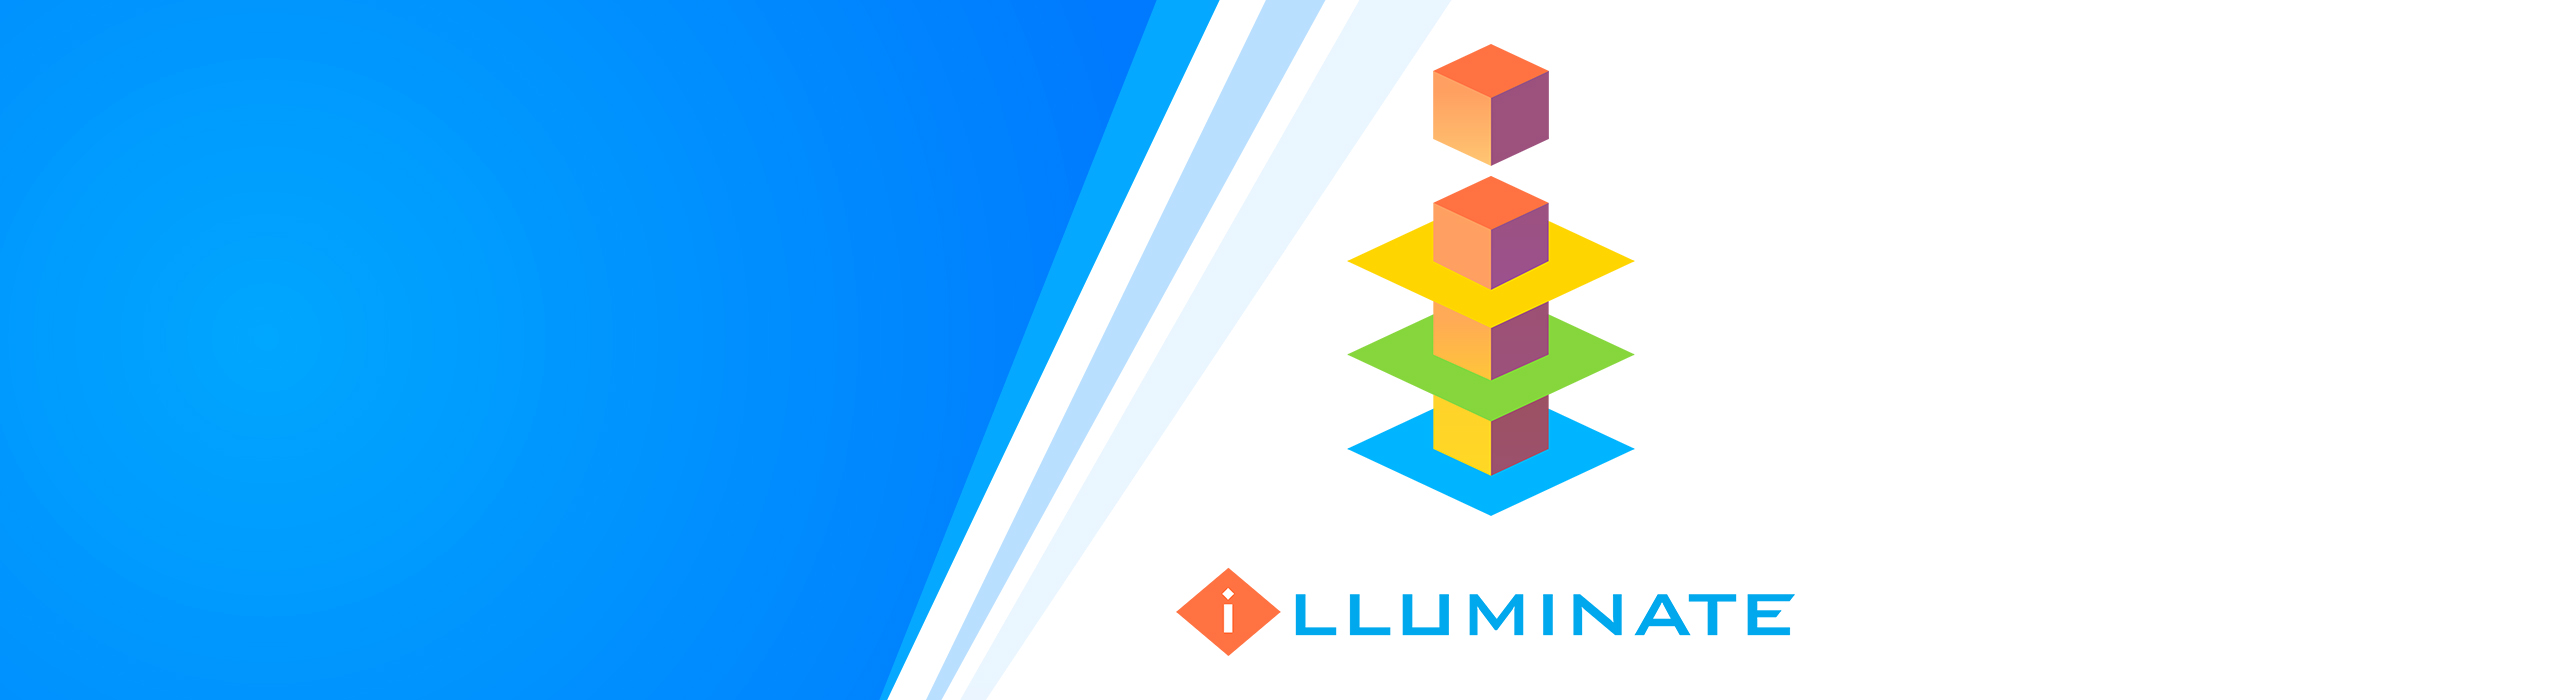 Home Page Carousel - iLLUMINATE Logo